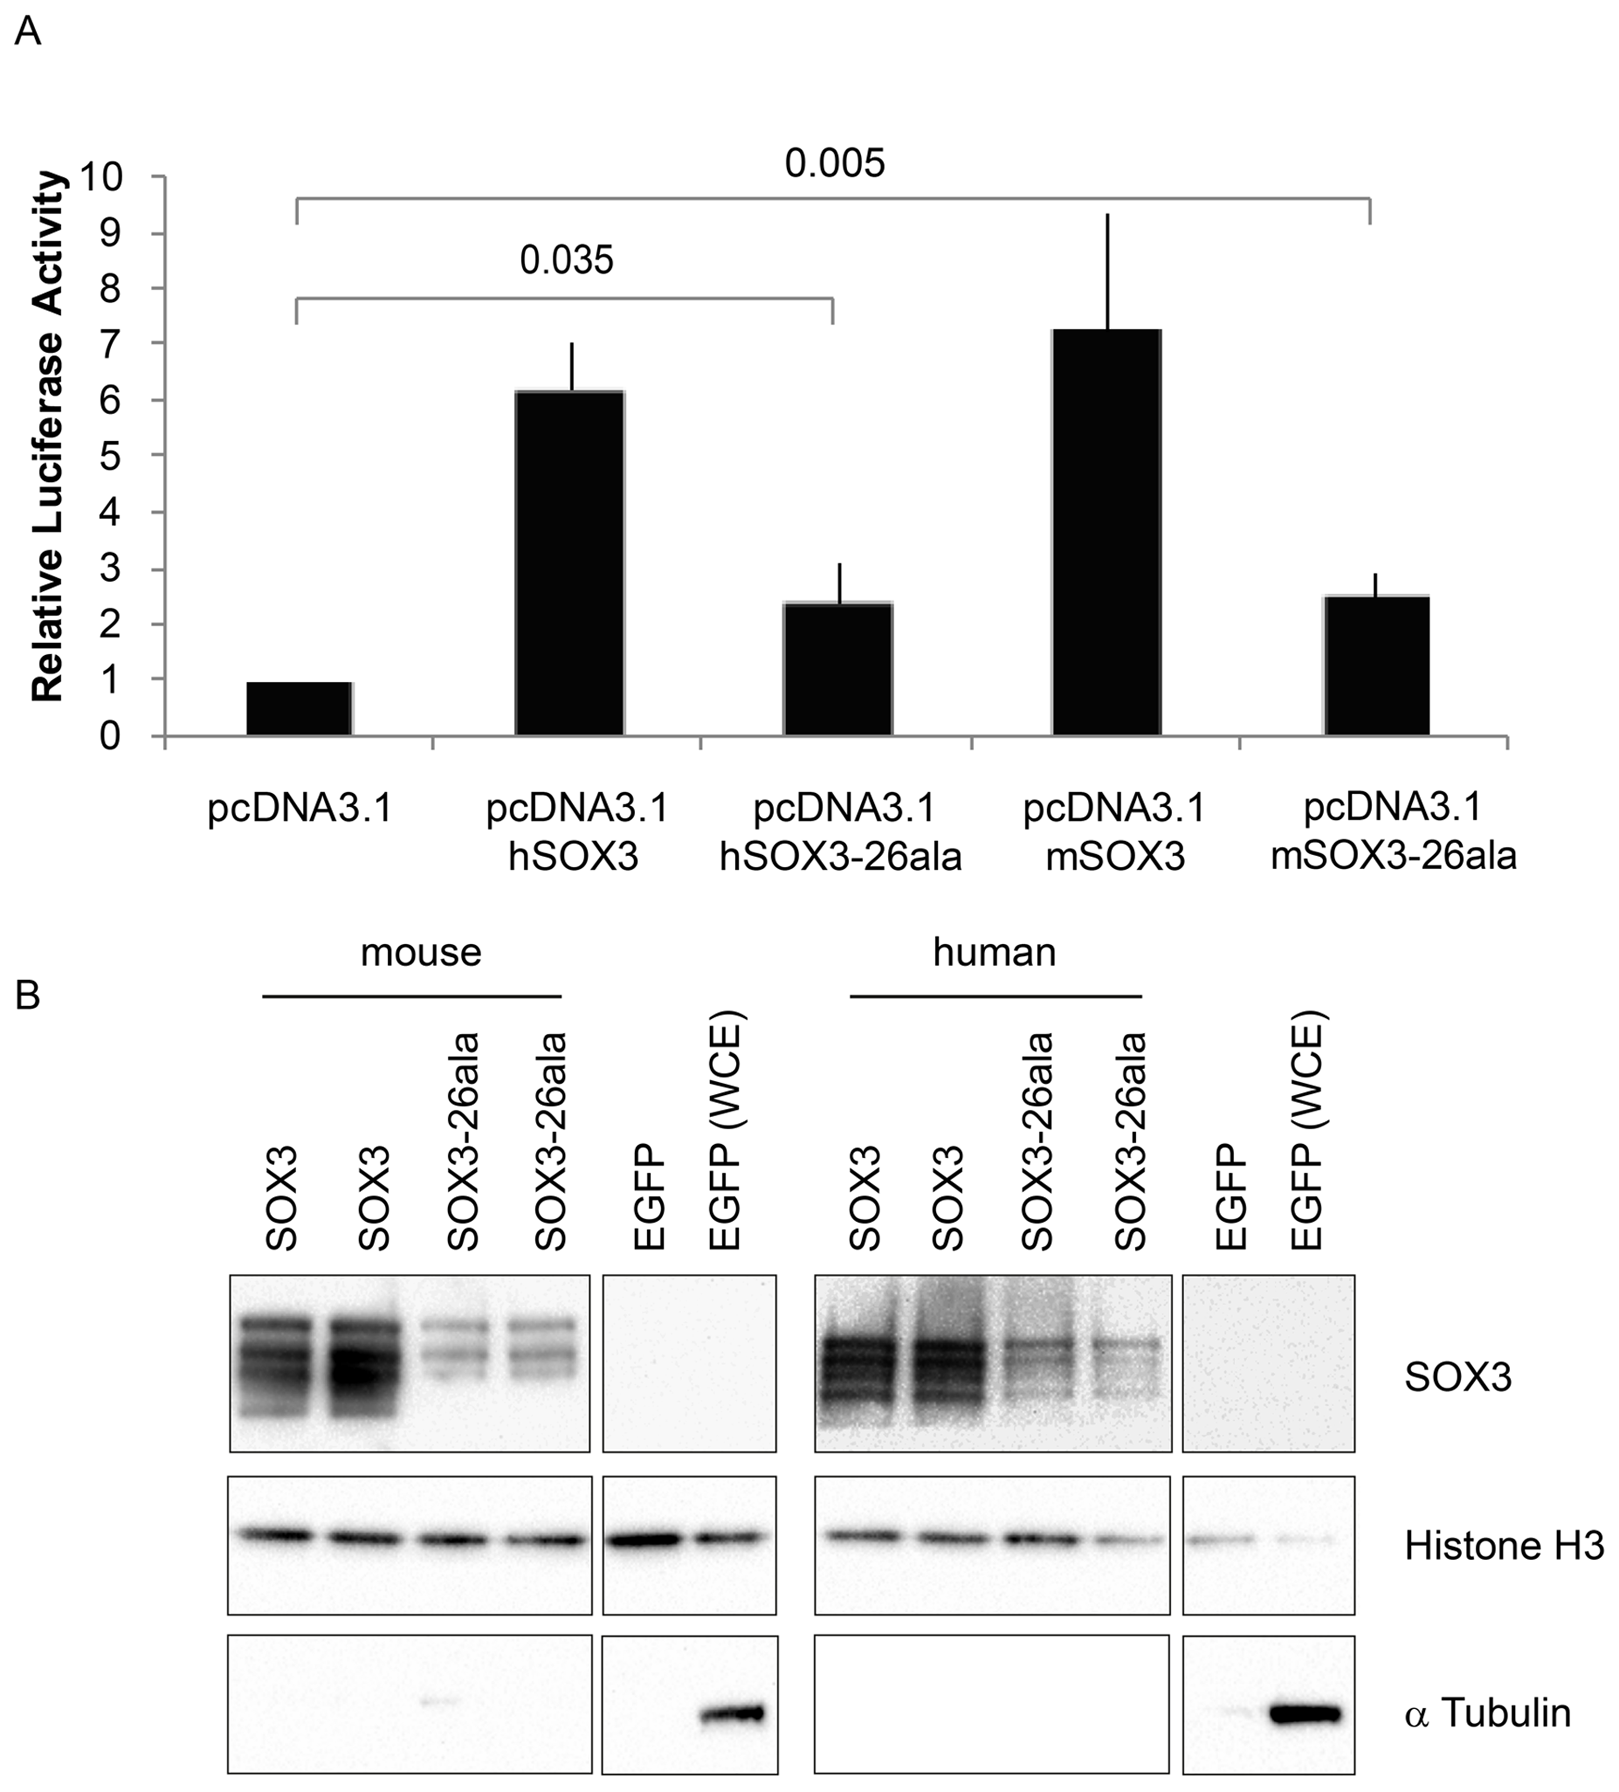 SOX3-26ala from mouse and human retains transactivation activity.